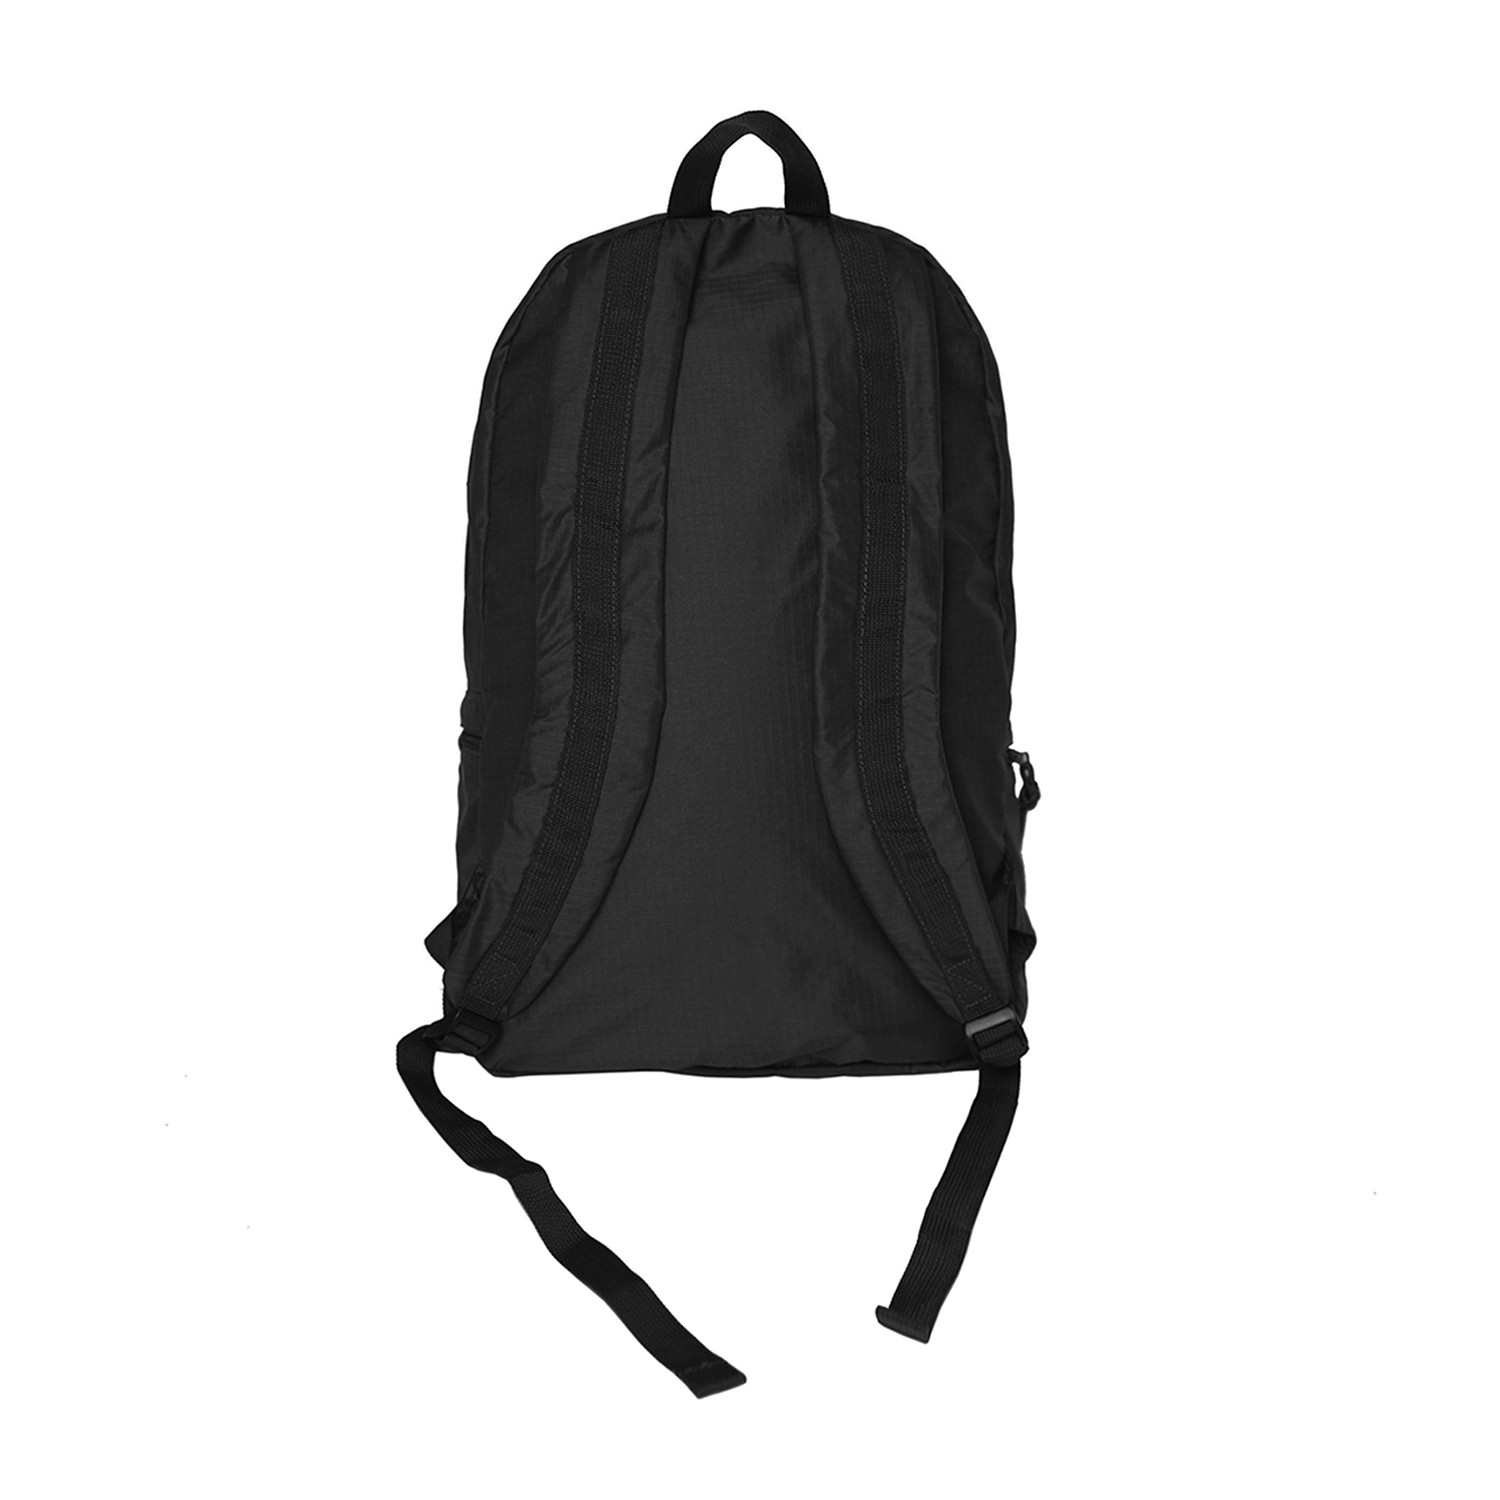 6406099f35 NCT Nano Packable Backpack    Black - Imperial Motion - Touch of Modern